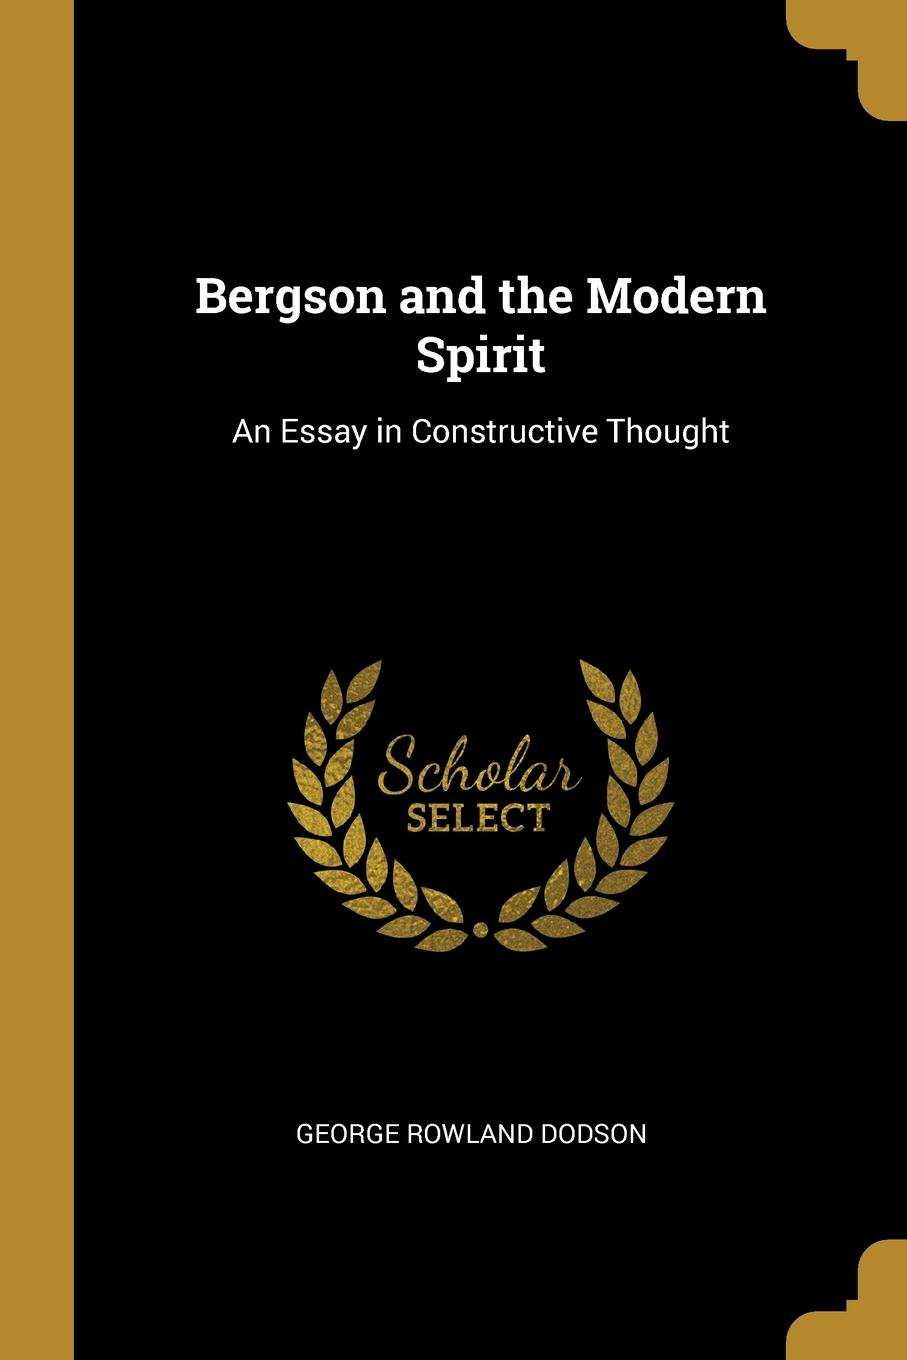 George Rowland Dodson. Bergson and the Modern Spirit. An Essay in Constructive Thought